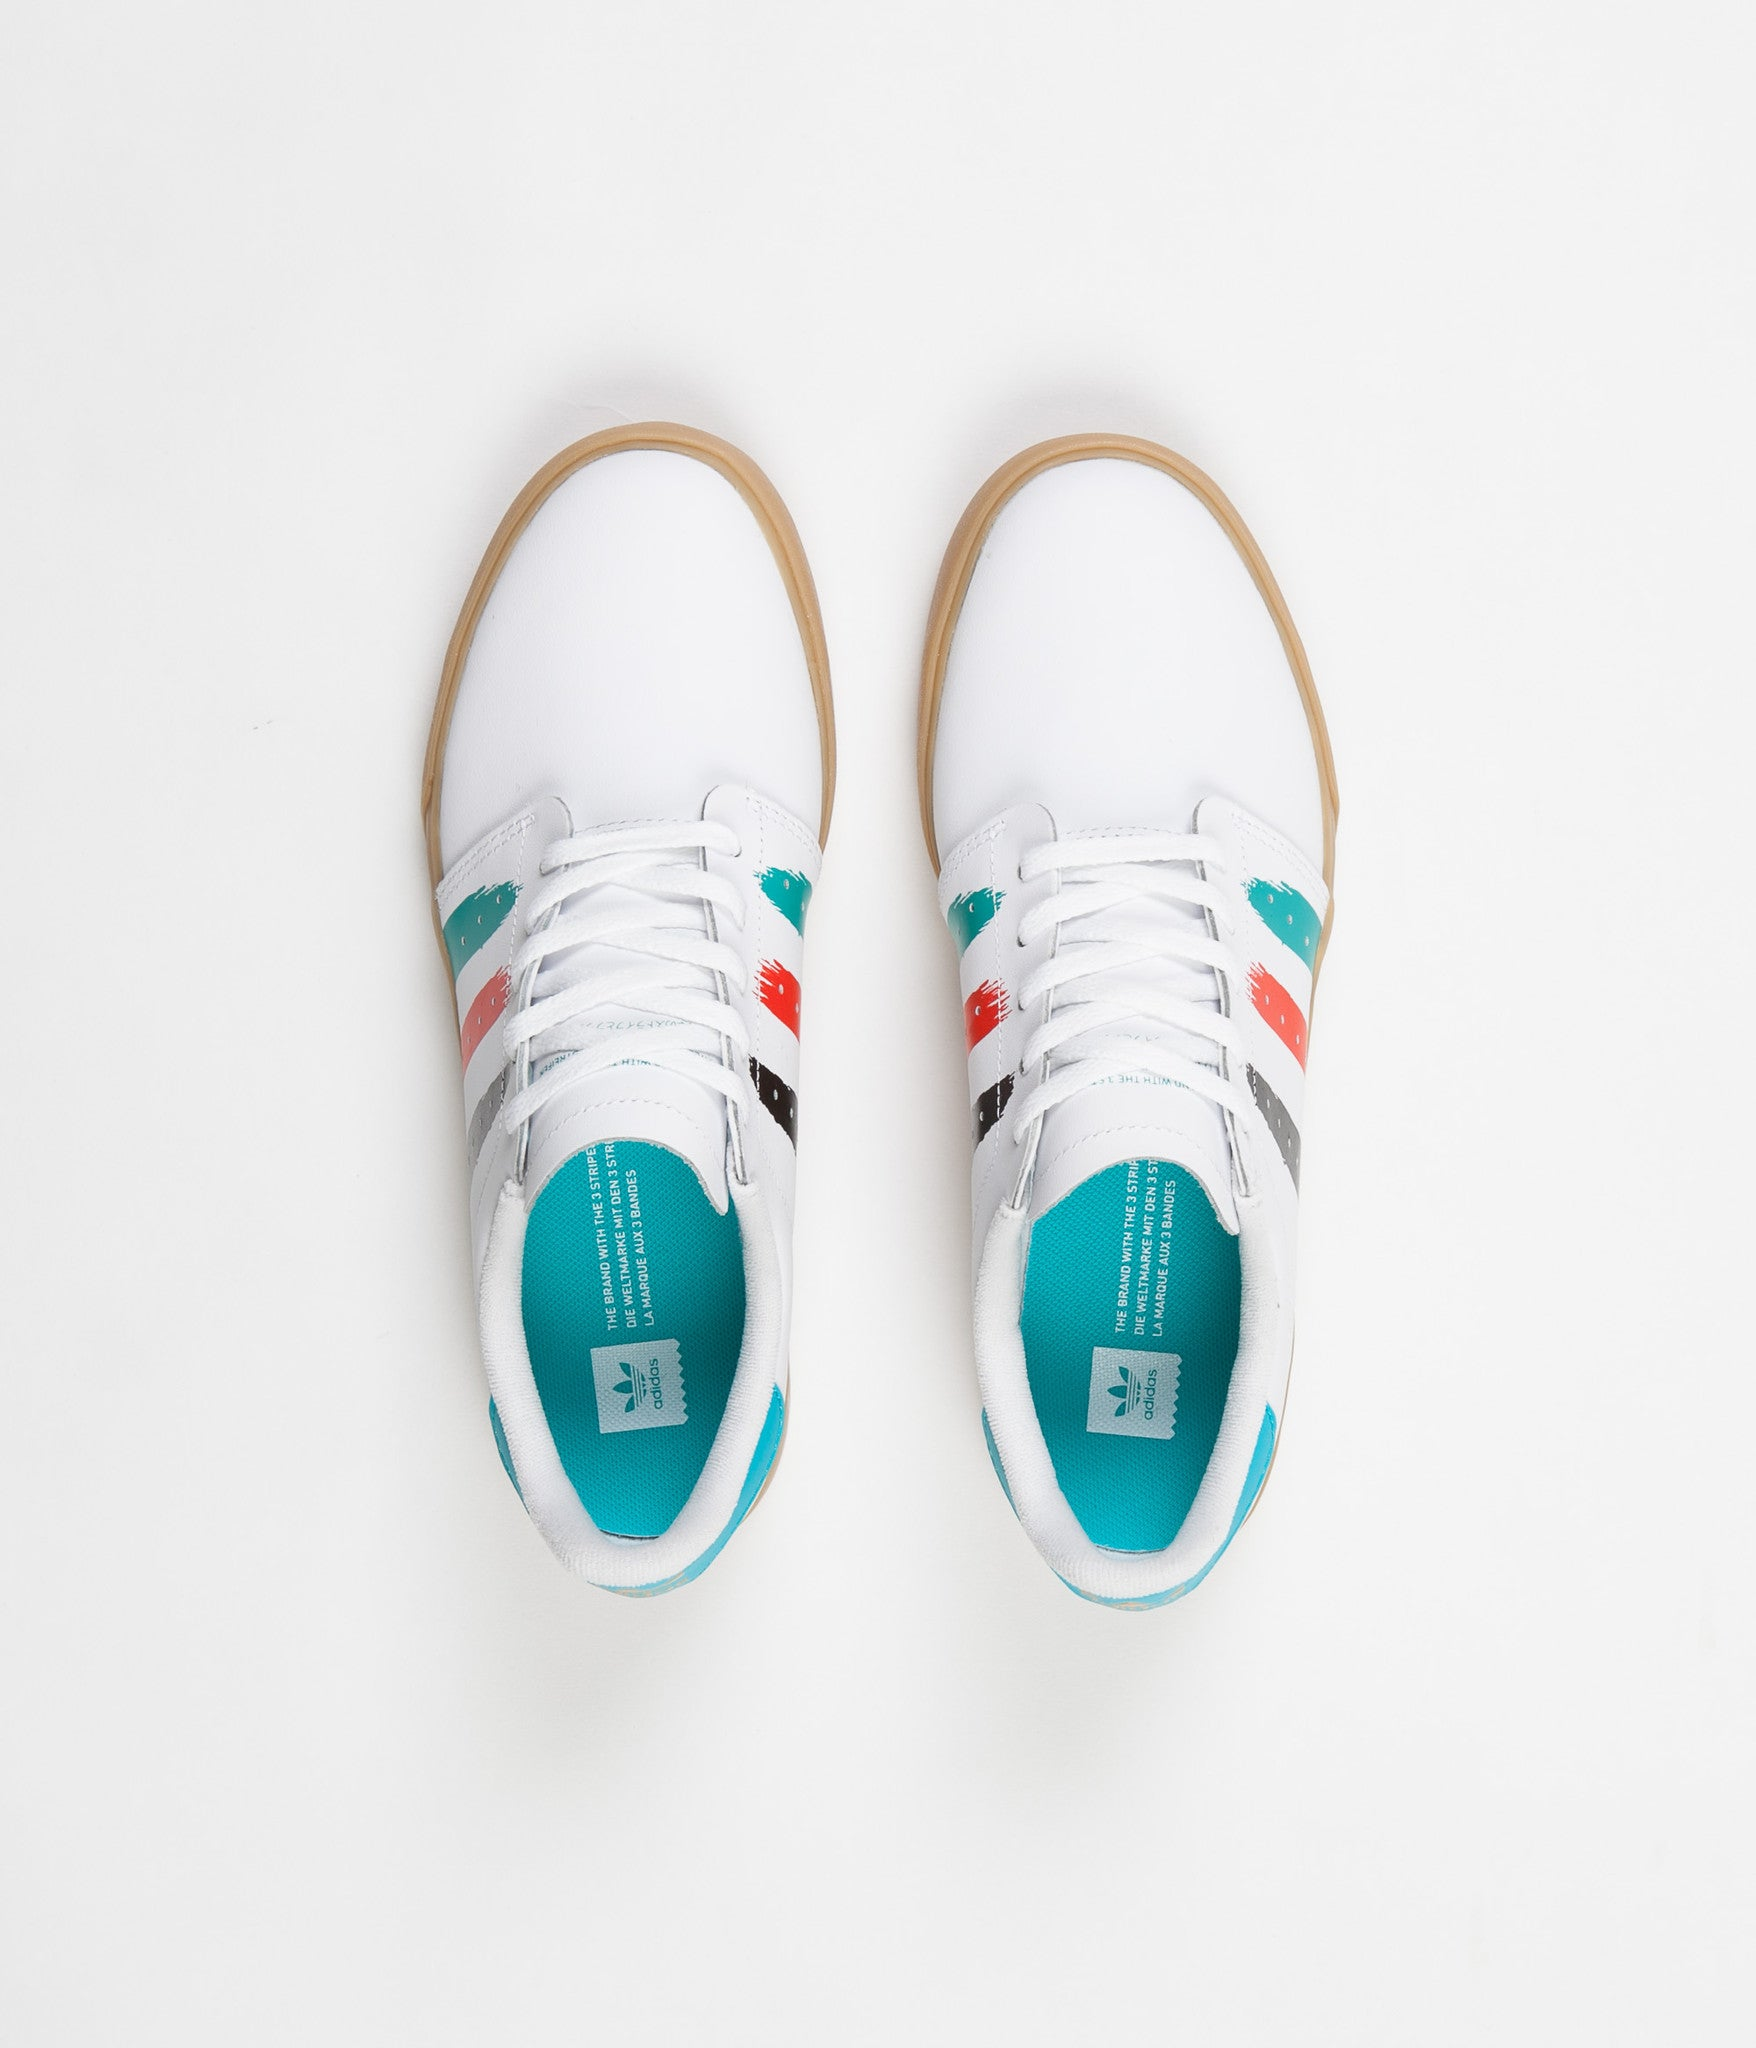 Adidas Seeley Court Shoes - White / Energy Blue / Energy